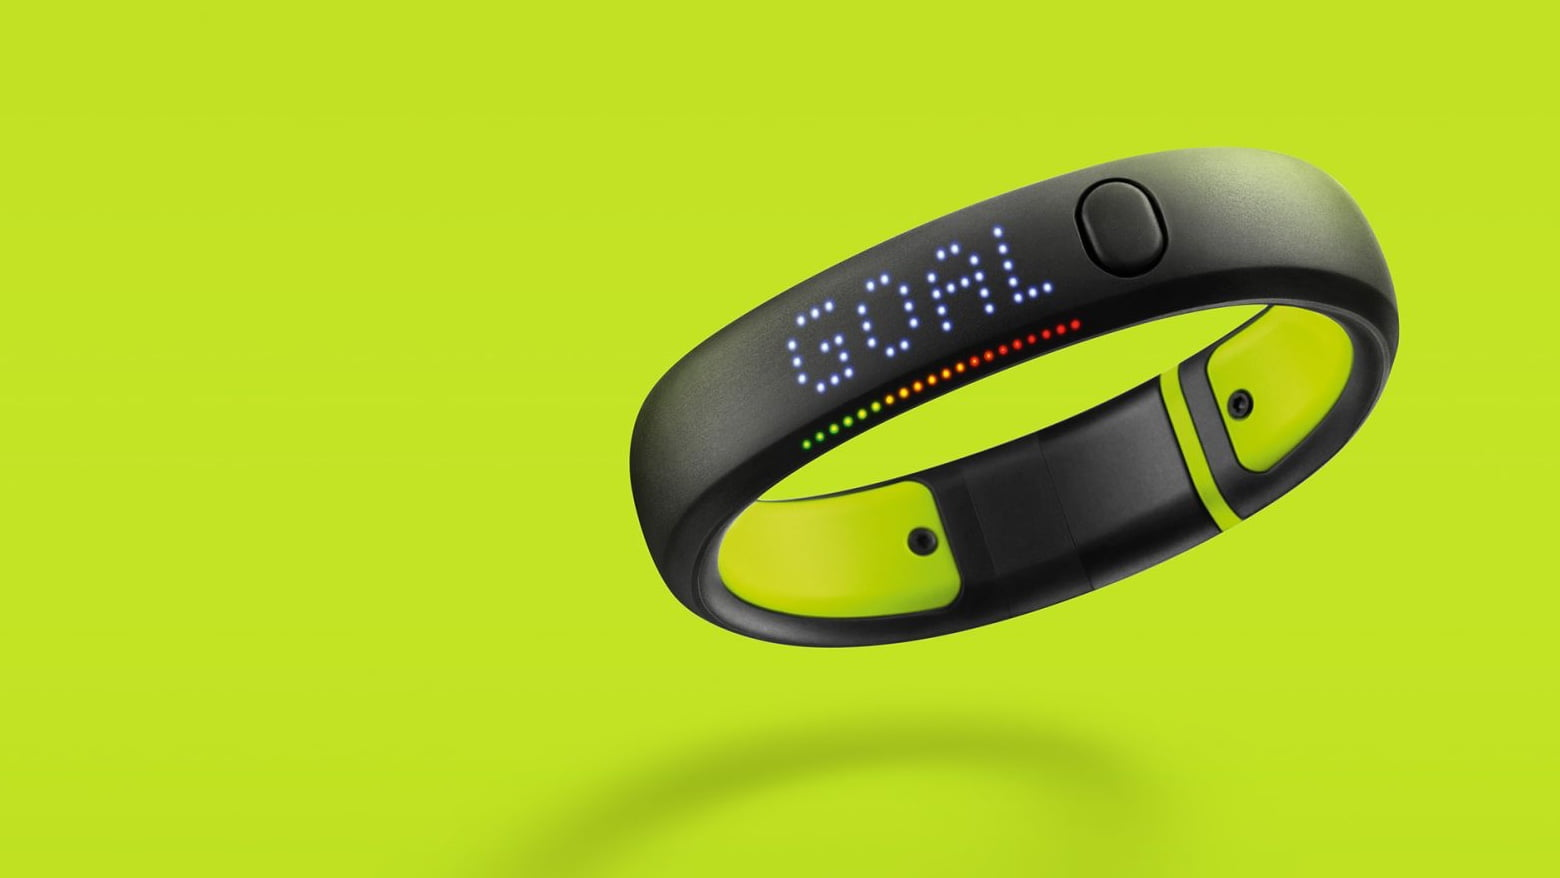 FuelBand developer goes to work at Apple